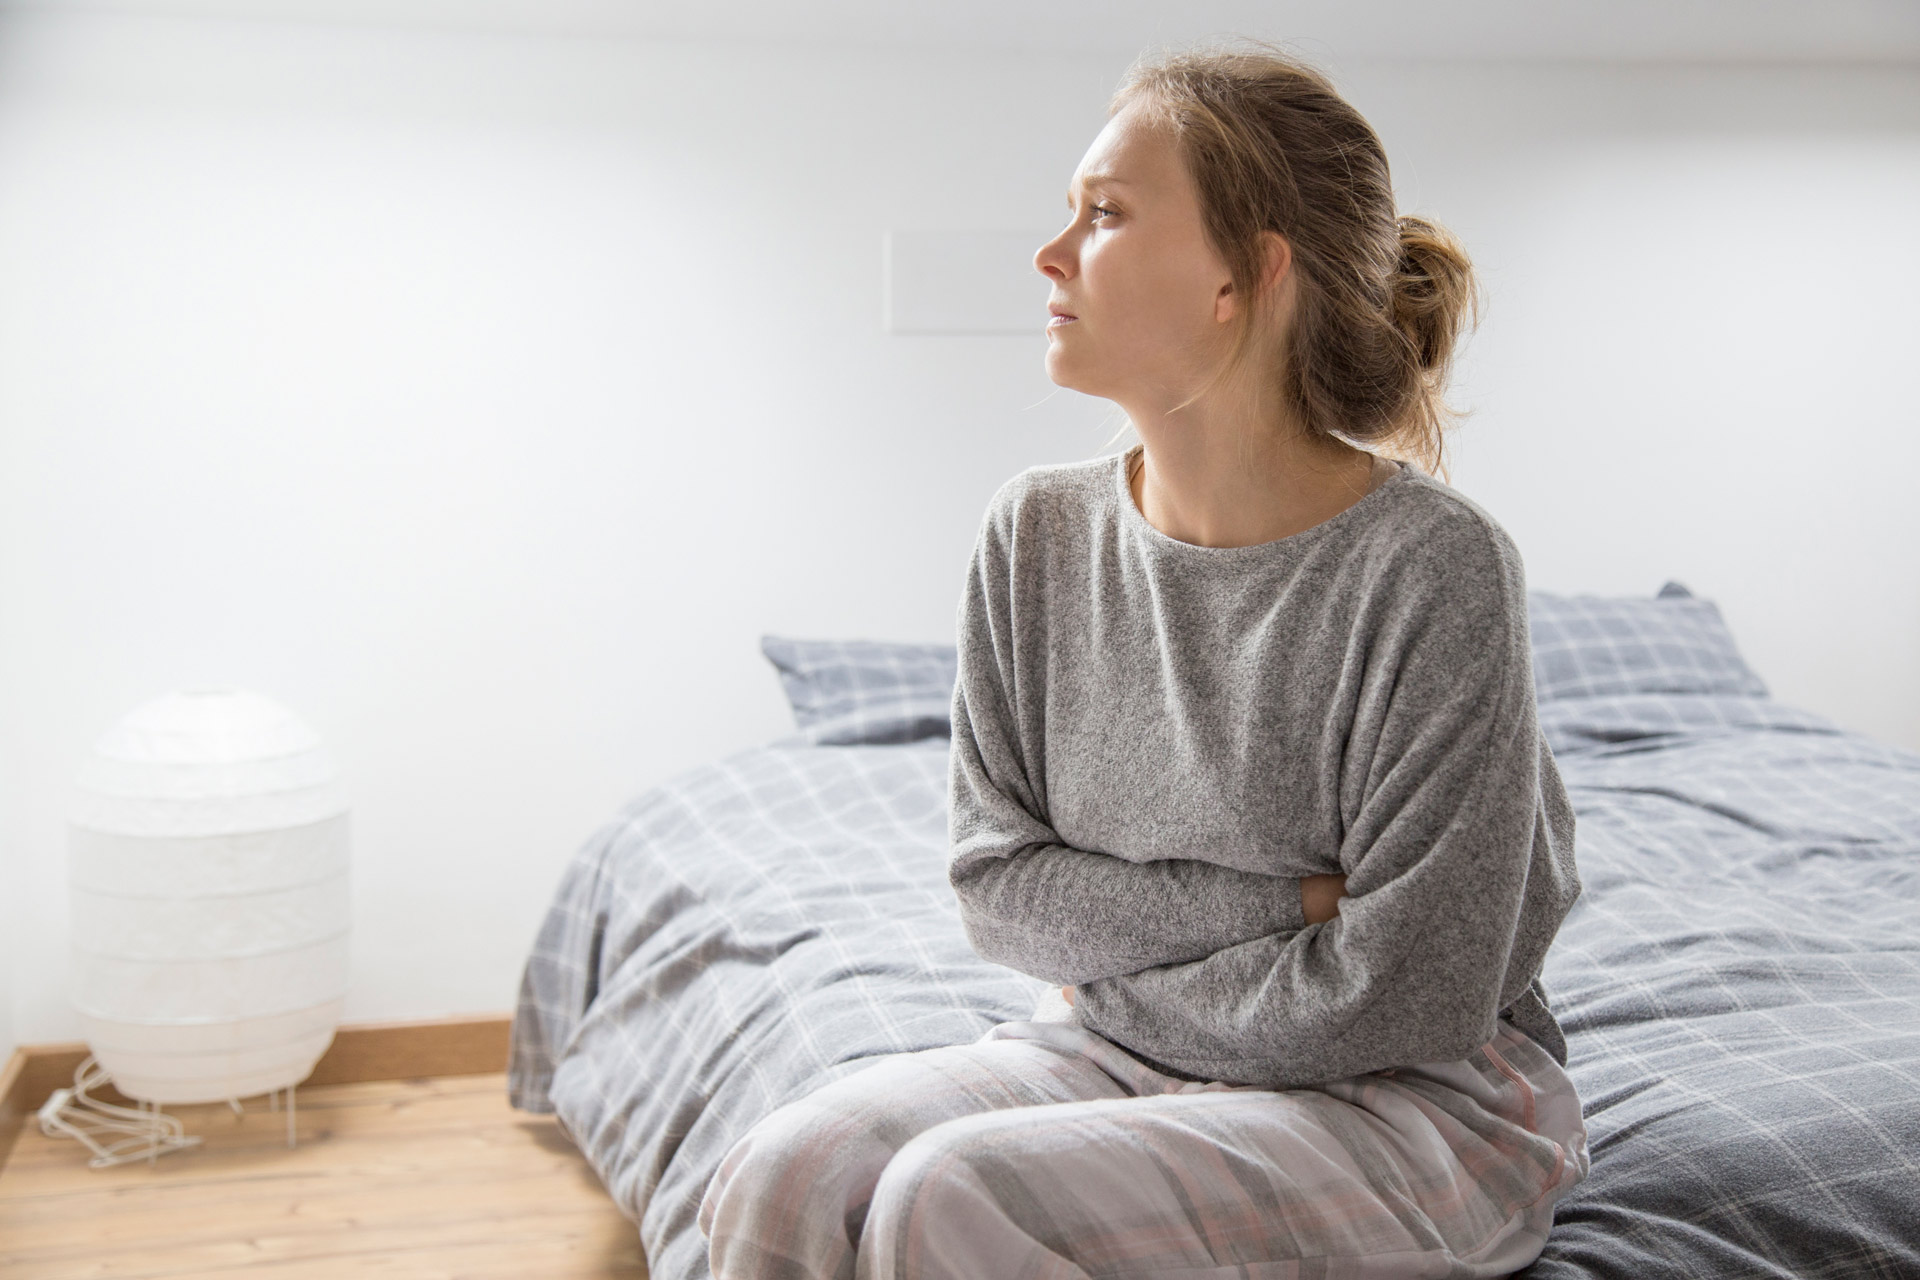 Irritable Bowel Syndrome: A Closer Look